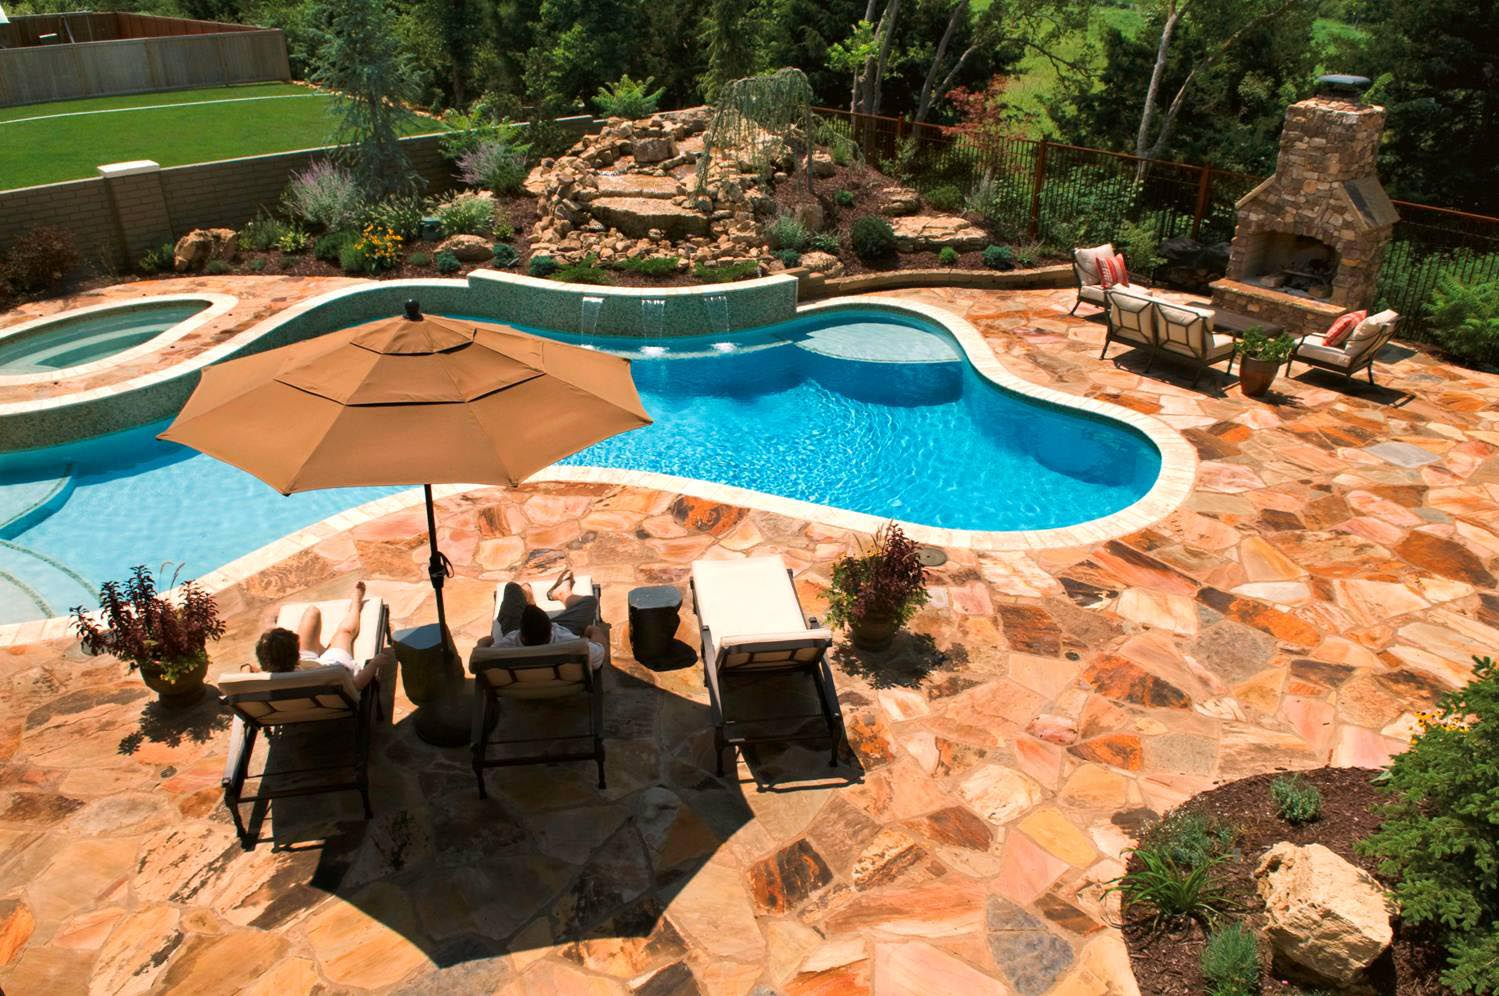 Inground pool deck which to choose backyard design ideas for Gunite pool design ideas